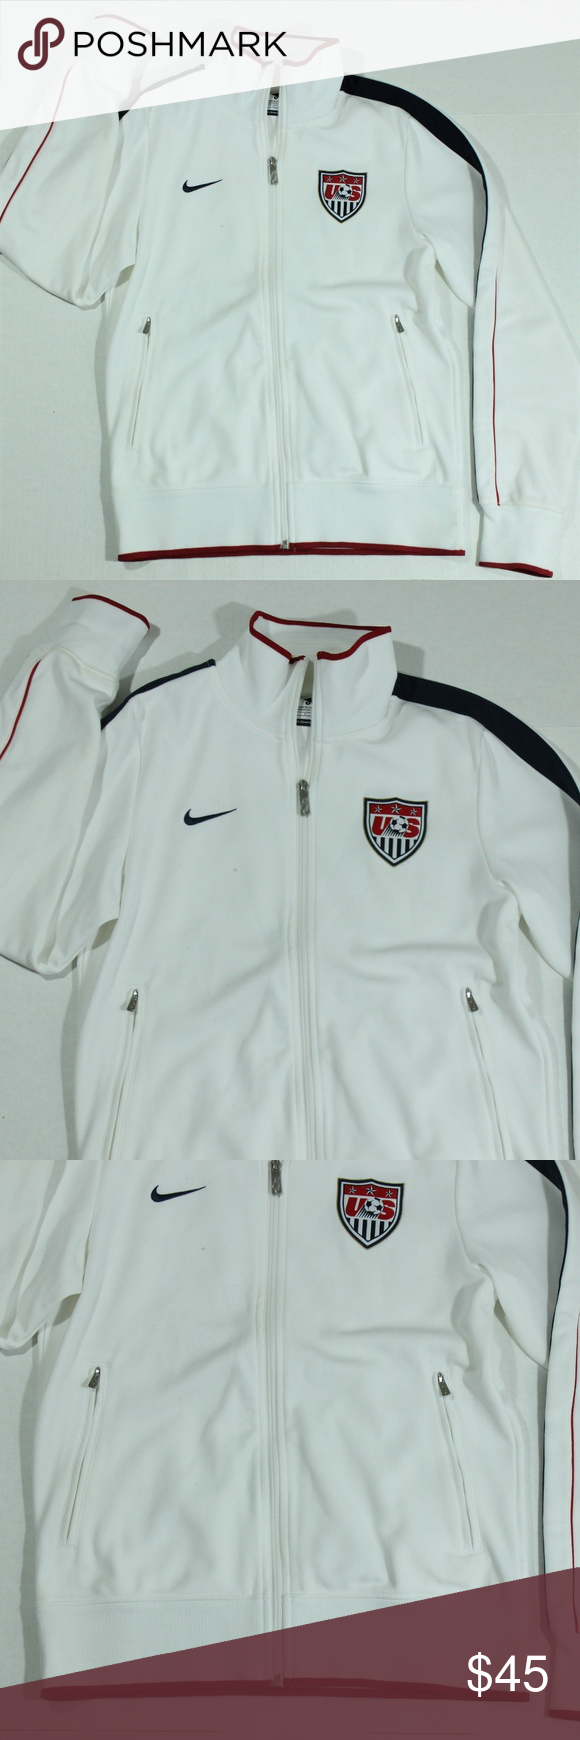 b2c298a3b4 Vintage Nike Soccer Track National Team USA Jacket Vintage Nike Soccer  Track National Team USA Jacket